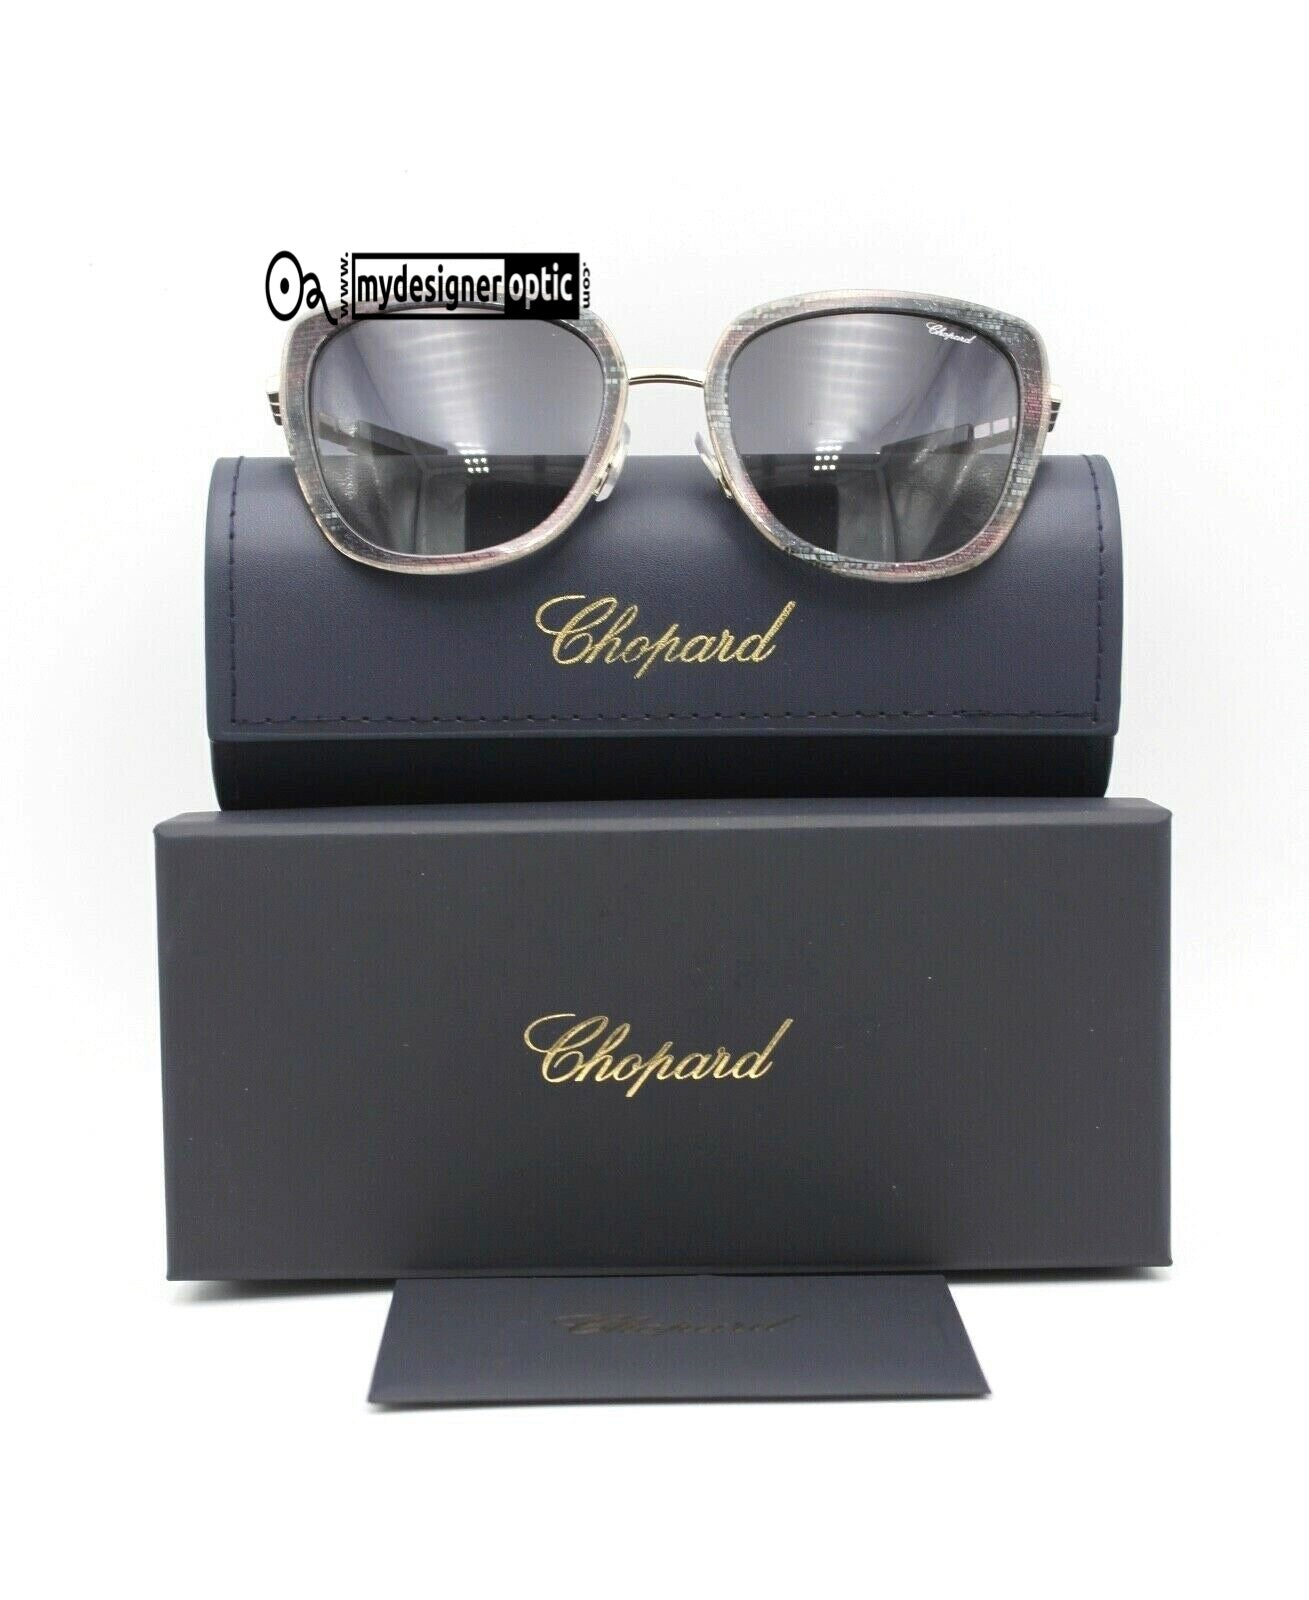 Chopard Sunglasses SCHC22 54-20 0594 135 Ceramic Made in Italy (DEAD STOCK) - Mydesigneroptic